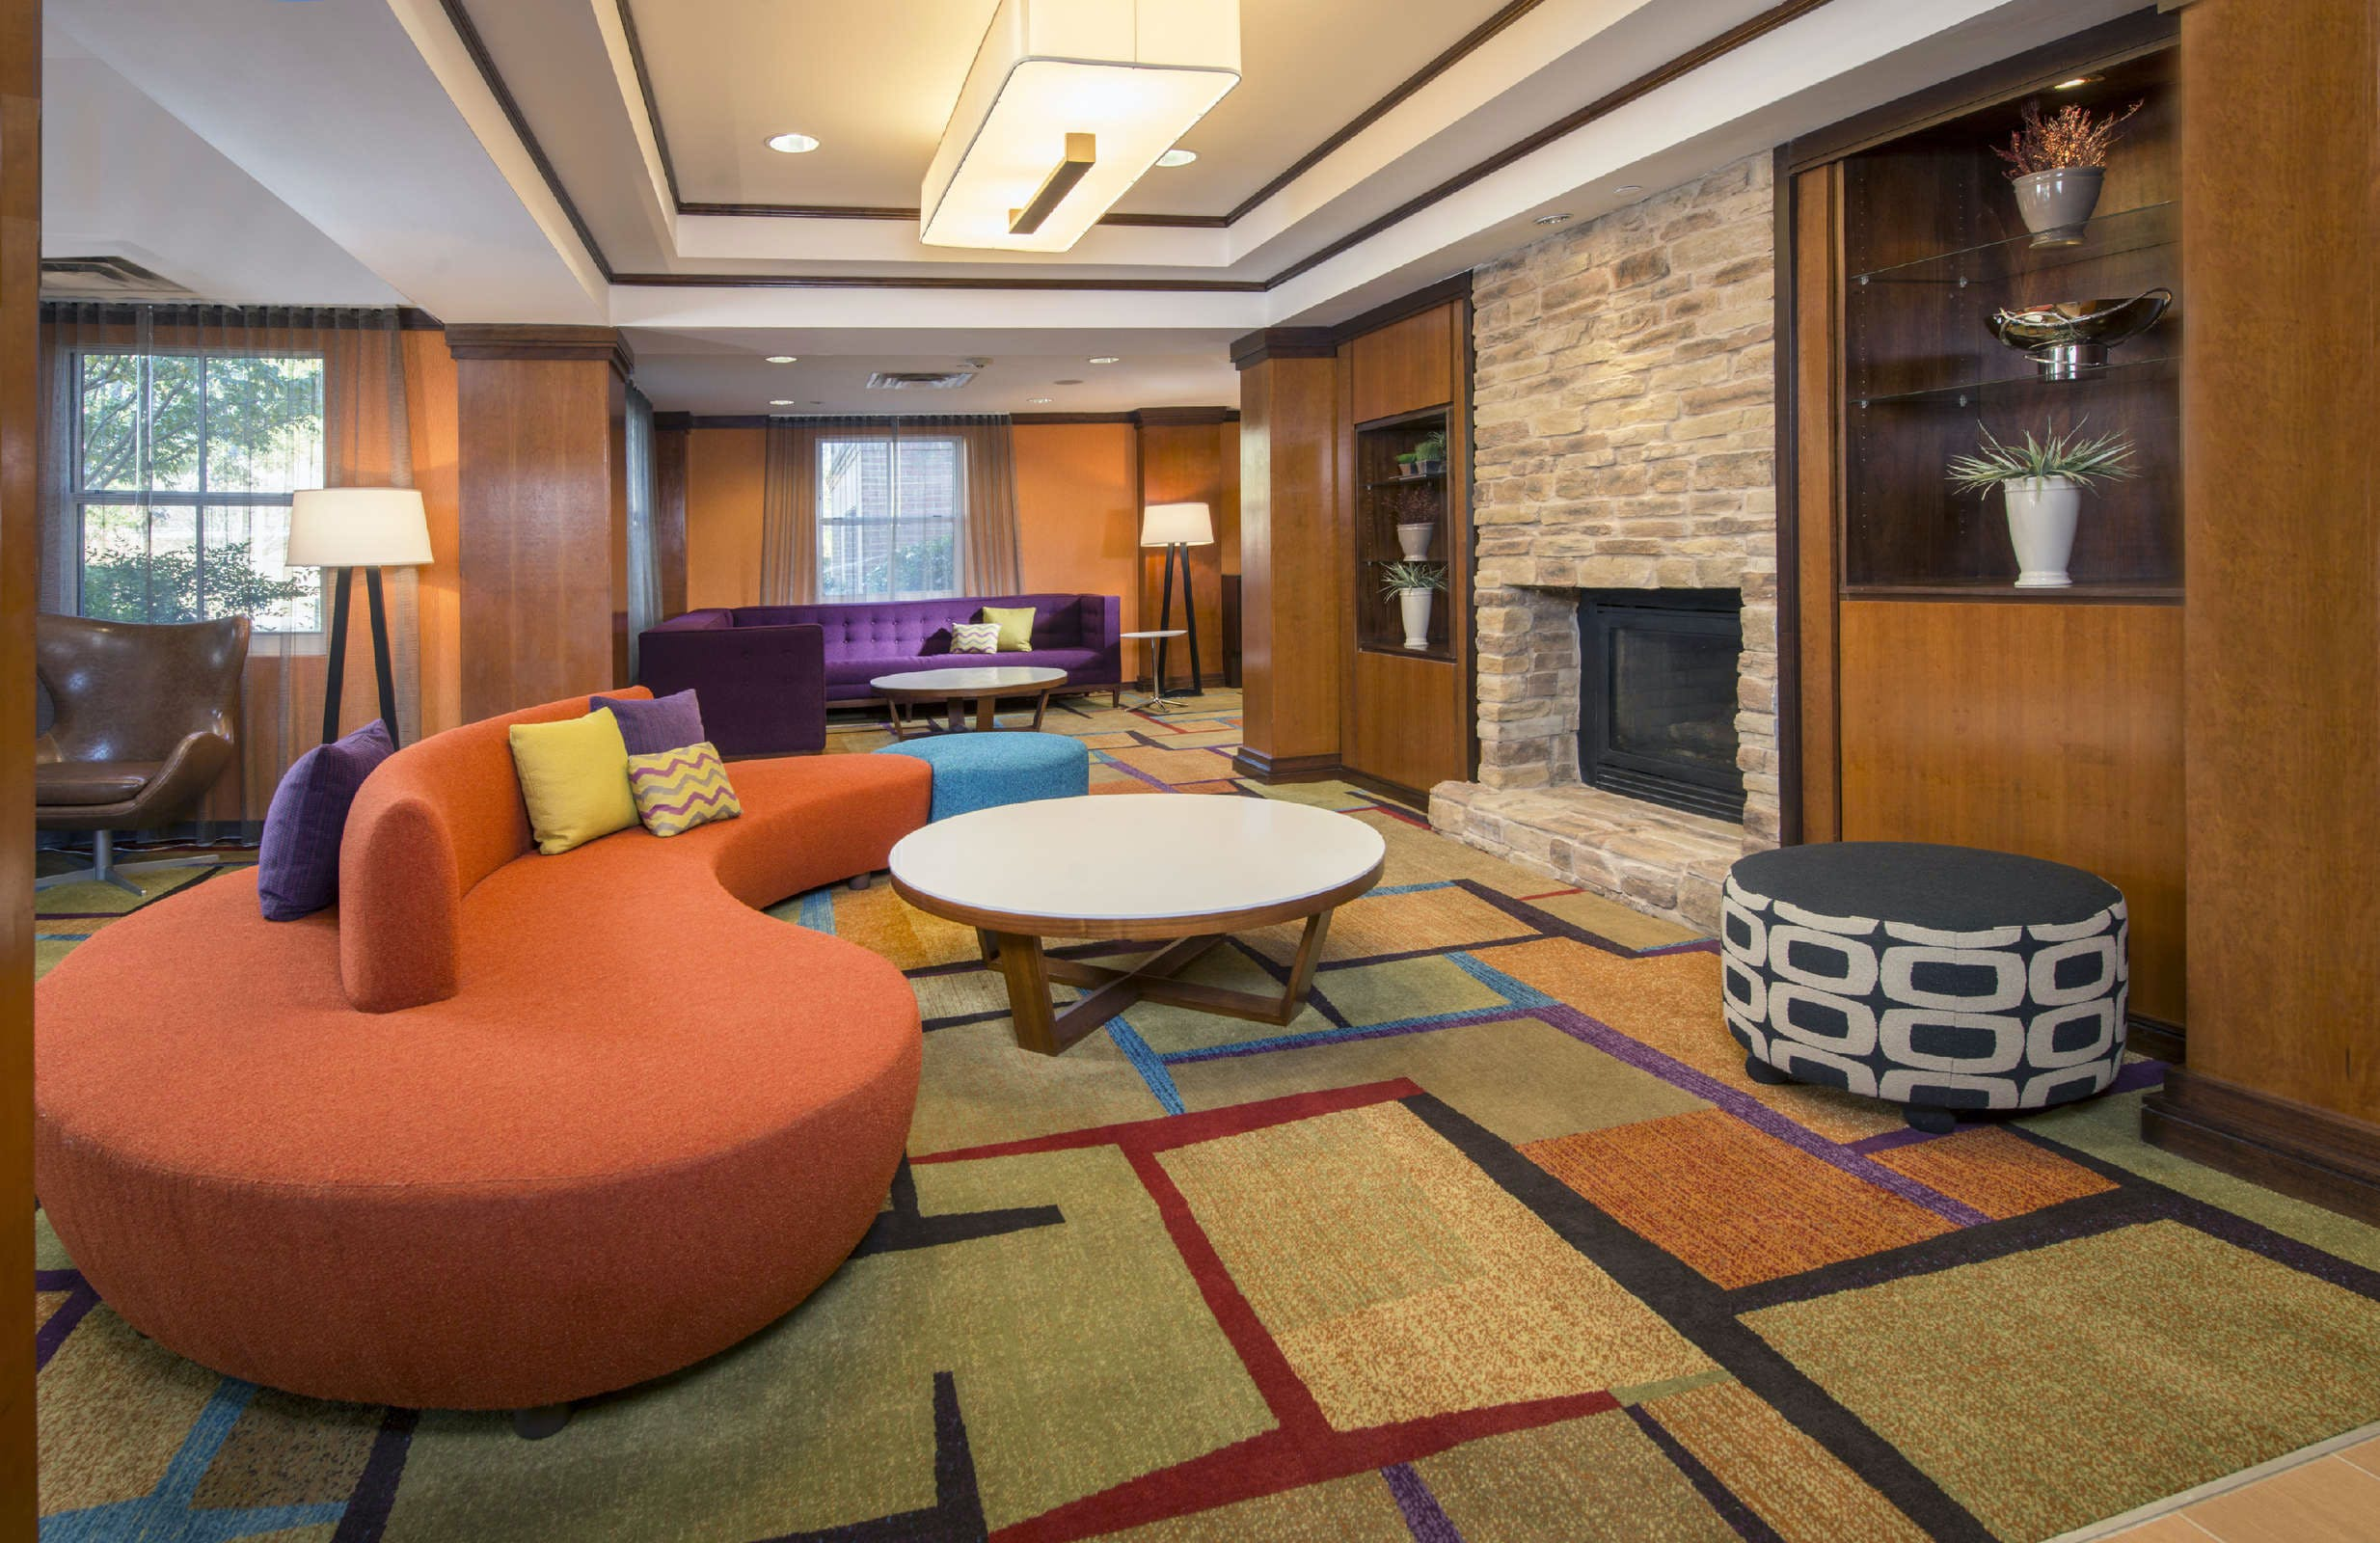 Fairfield Inn & Suites by Marriott Williamsburg